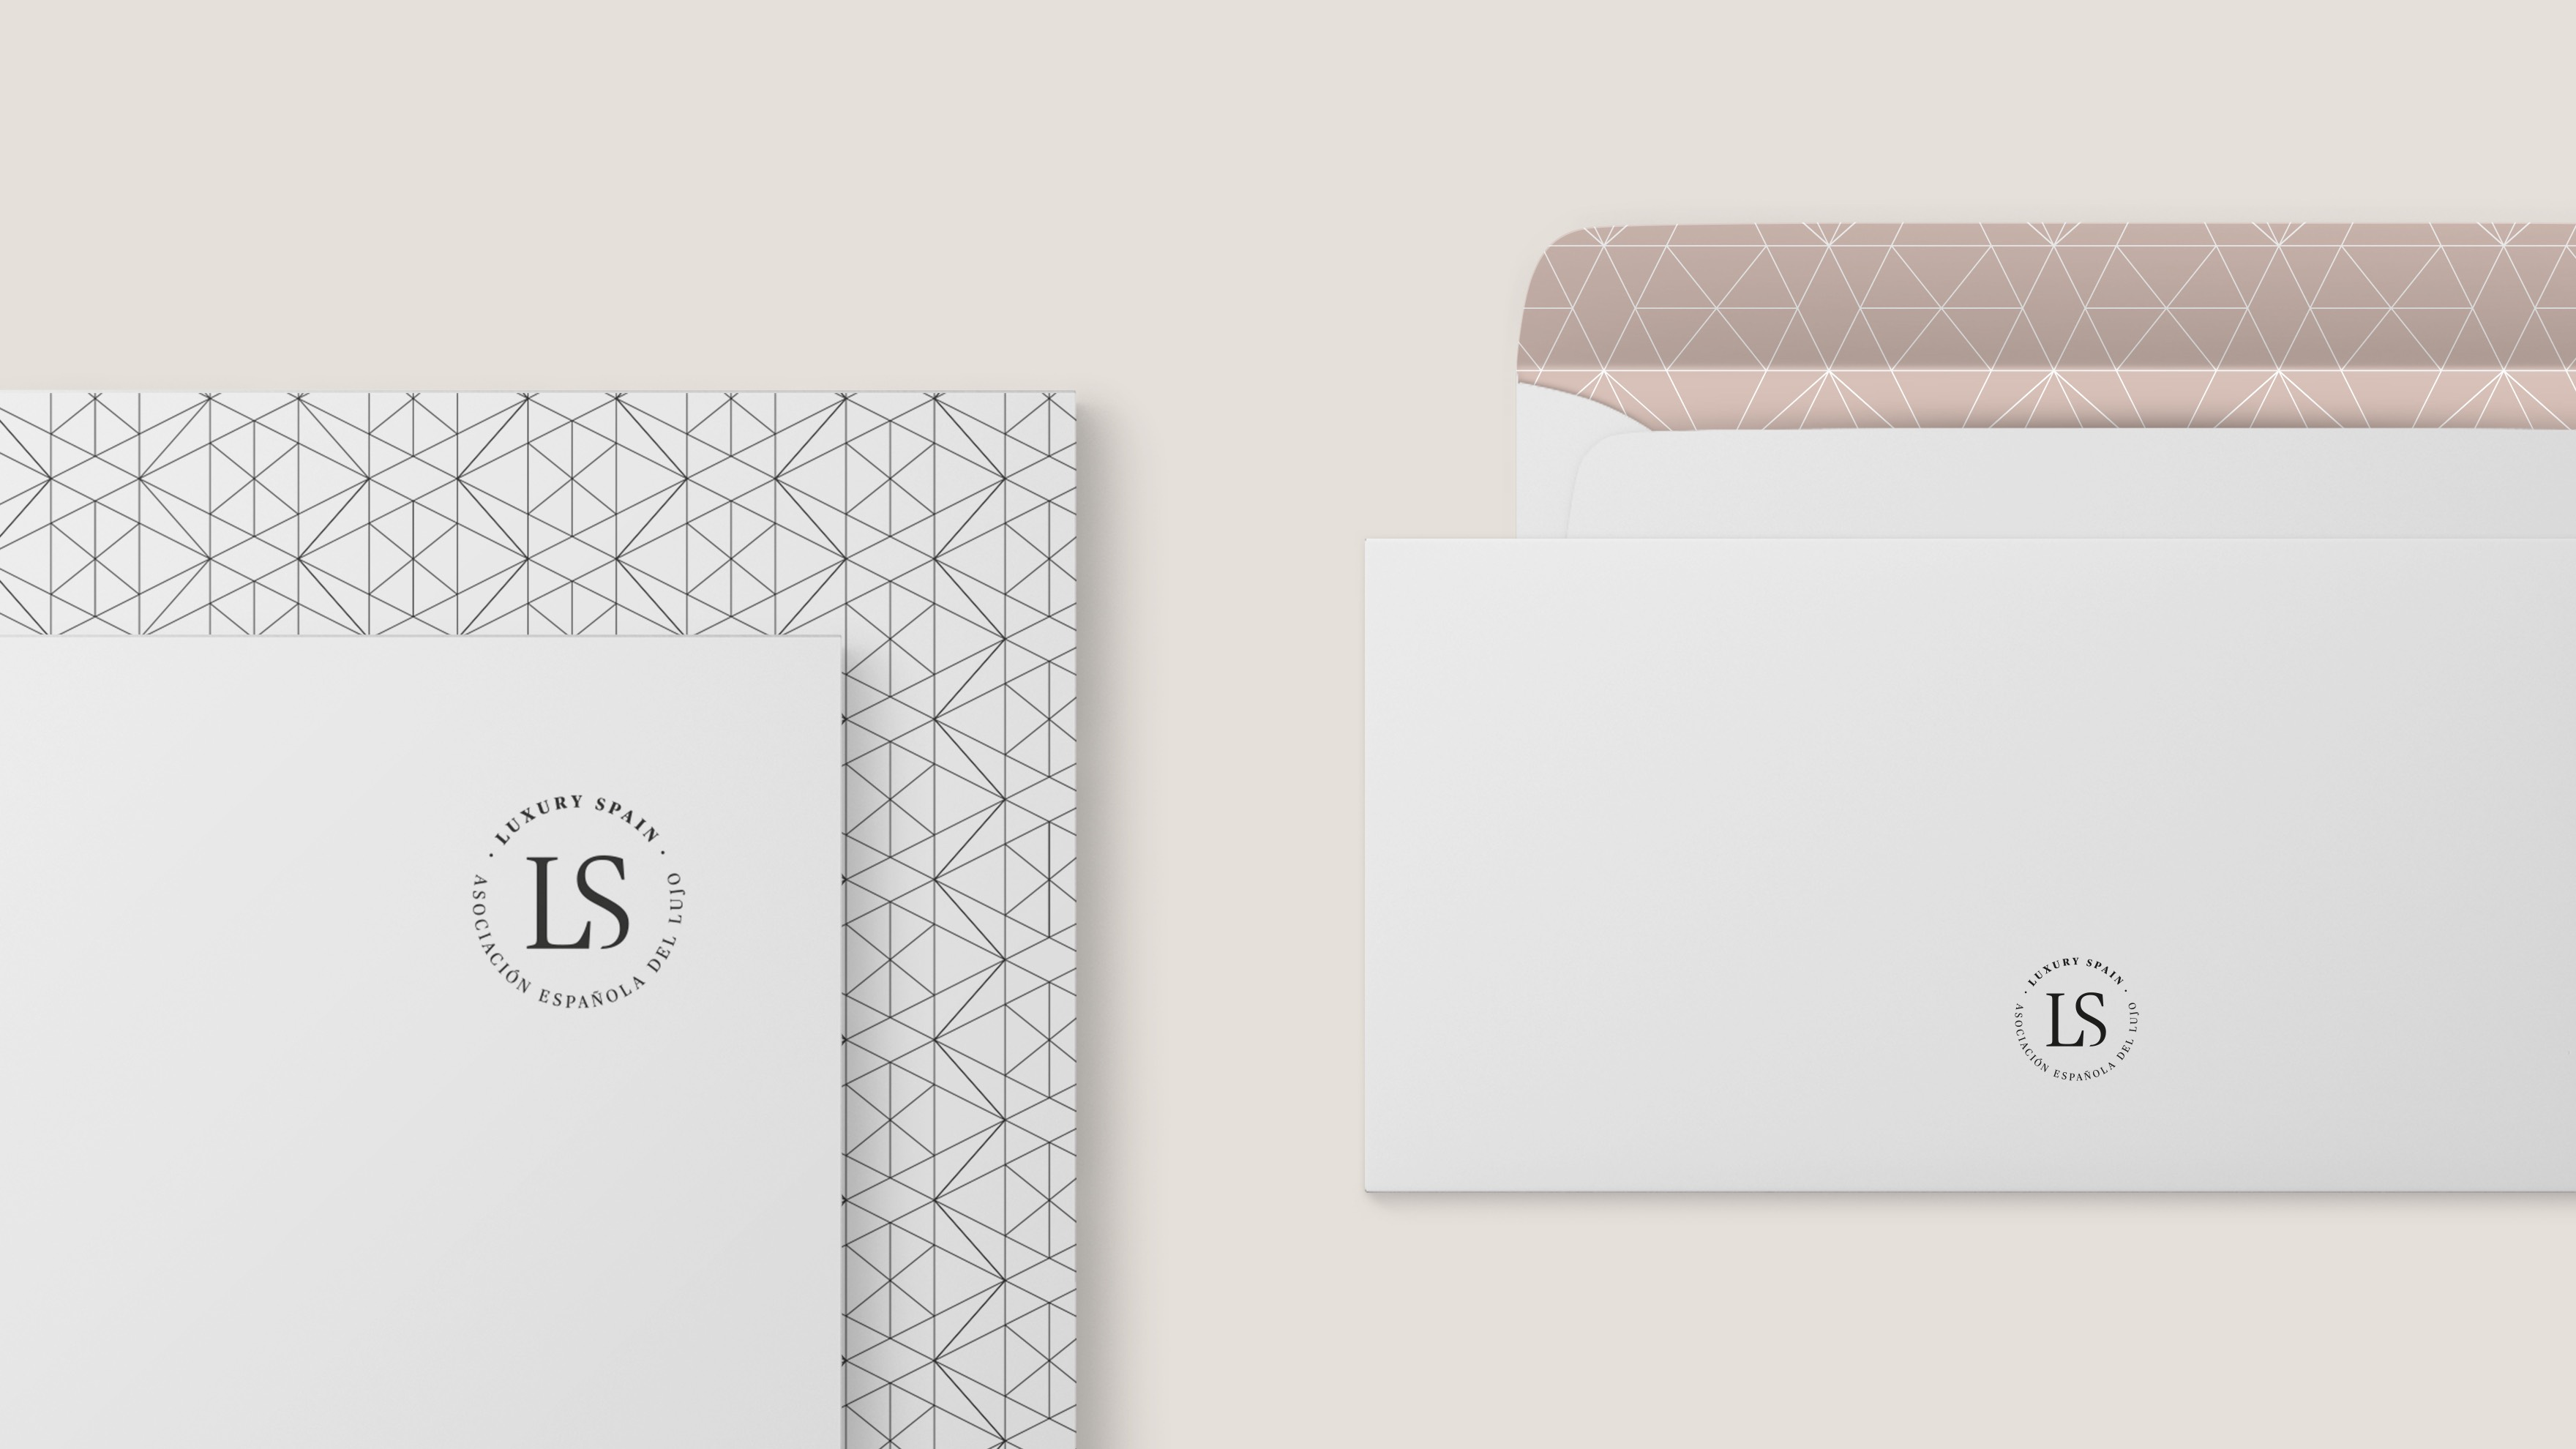 LUXURY SPAIN / CORPORATE IDENTITY / BRANDING